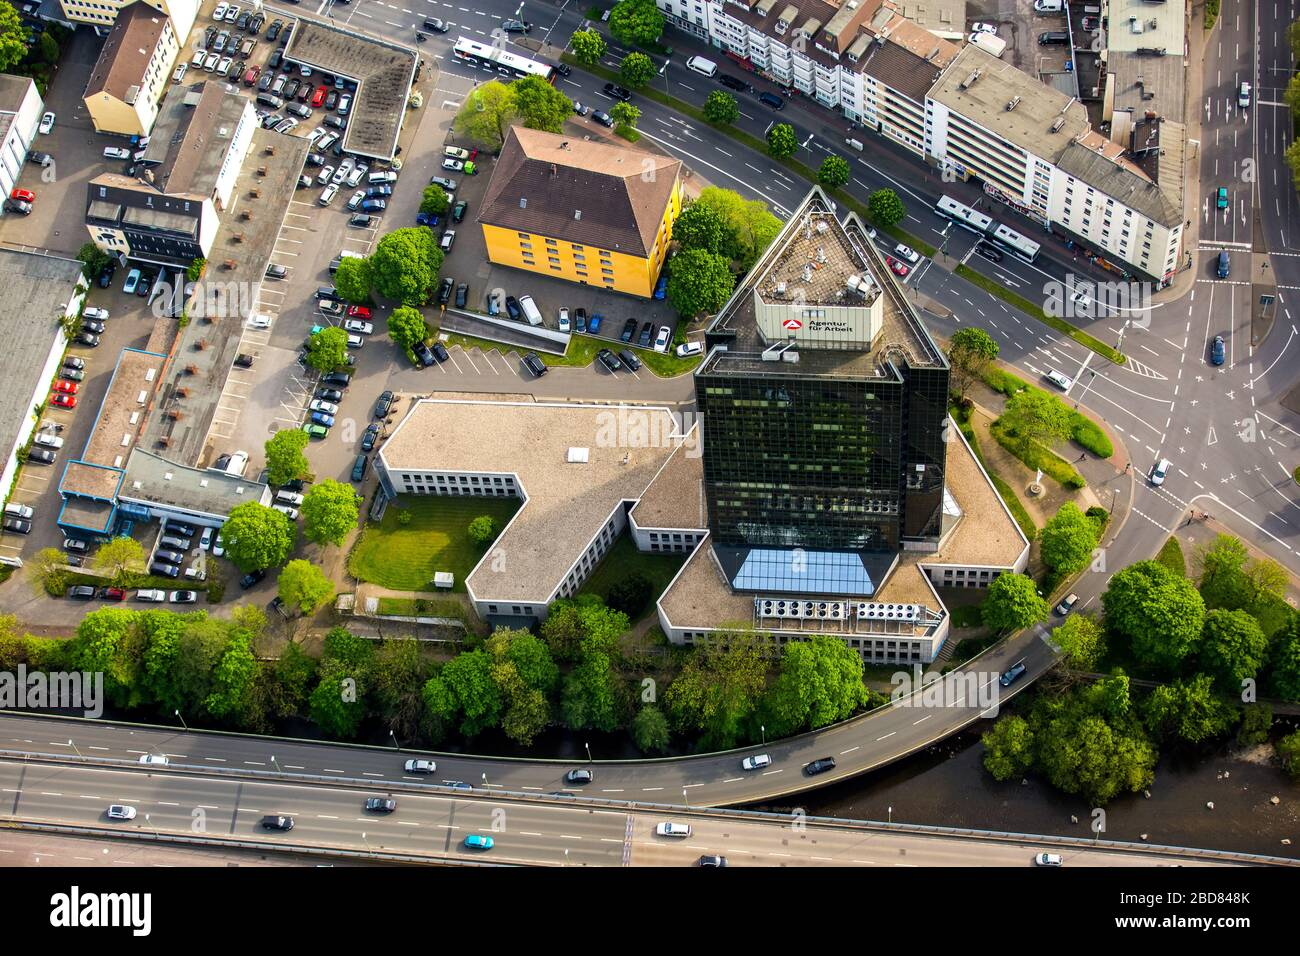 , employment office Agentur fuer Arbeit at Koernerstrasse in Hagen-Mittelstadt, 09.05.2016, aerial view, Germany, North Rhine-Westphalia, Ruhr Area, Hagen Stock Photo